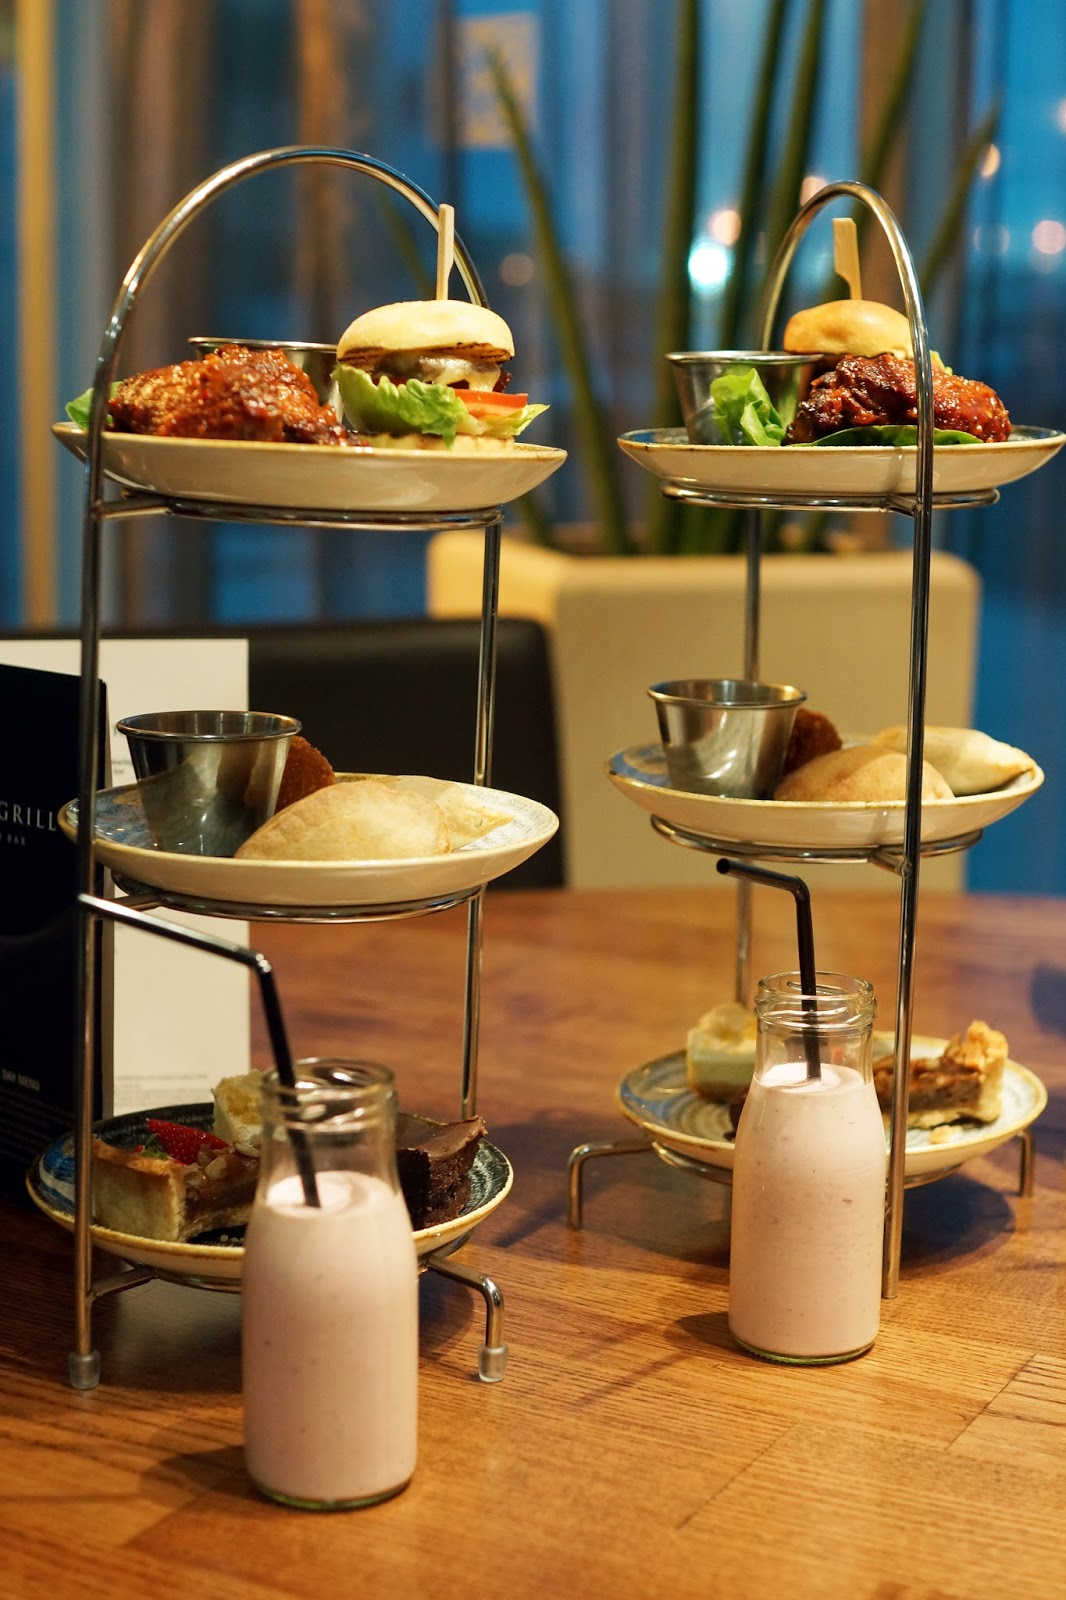 Hello Freckles Afternoon Tea American Sliders Calzone Hilton Garden Inn Sunderland Food Review